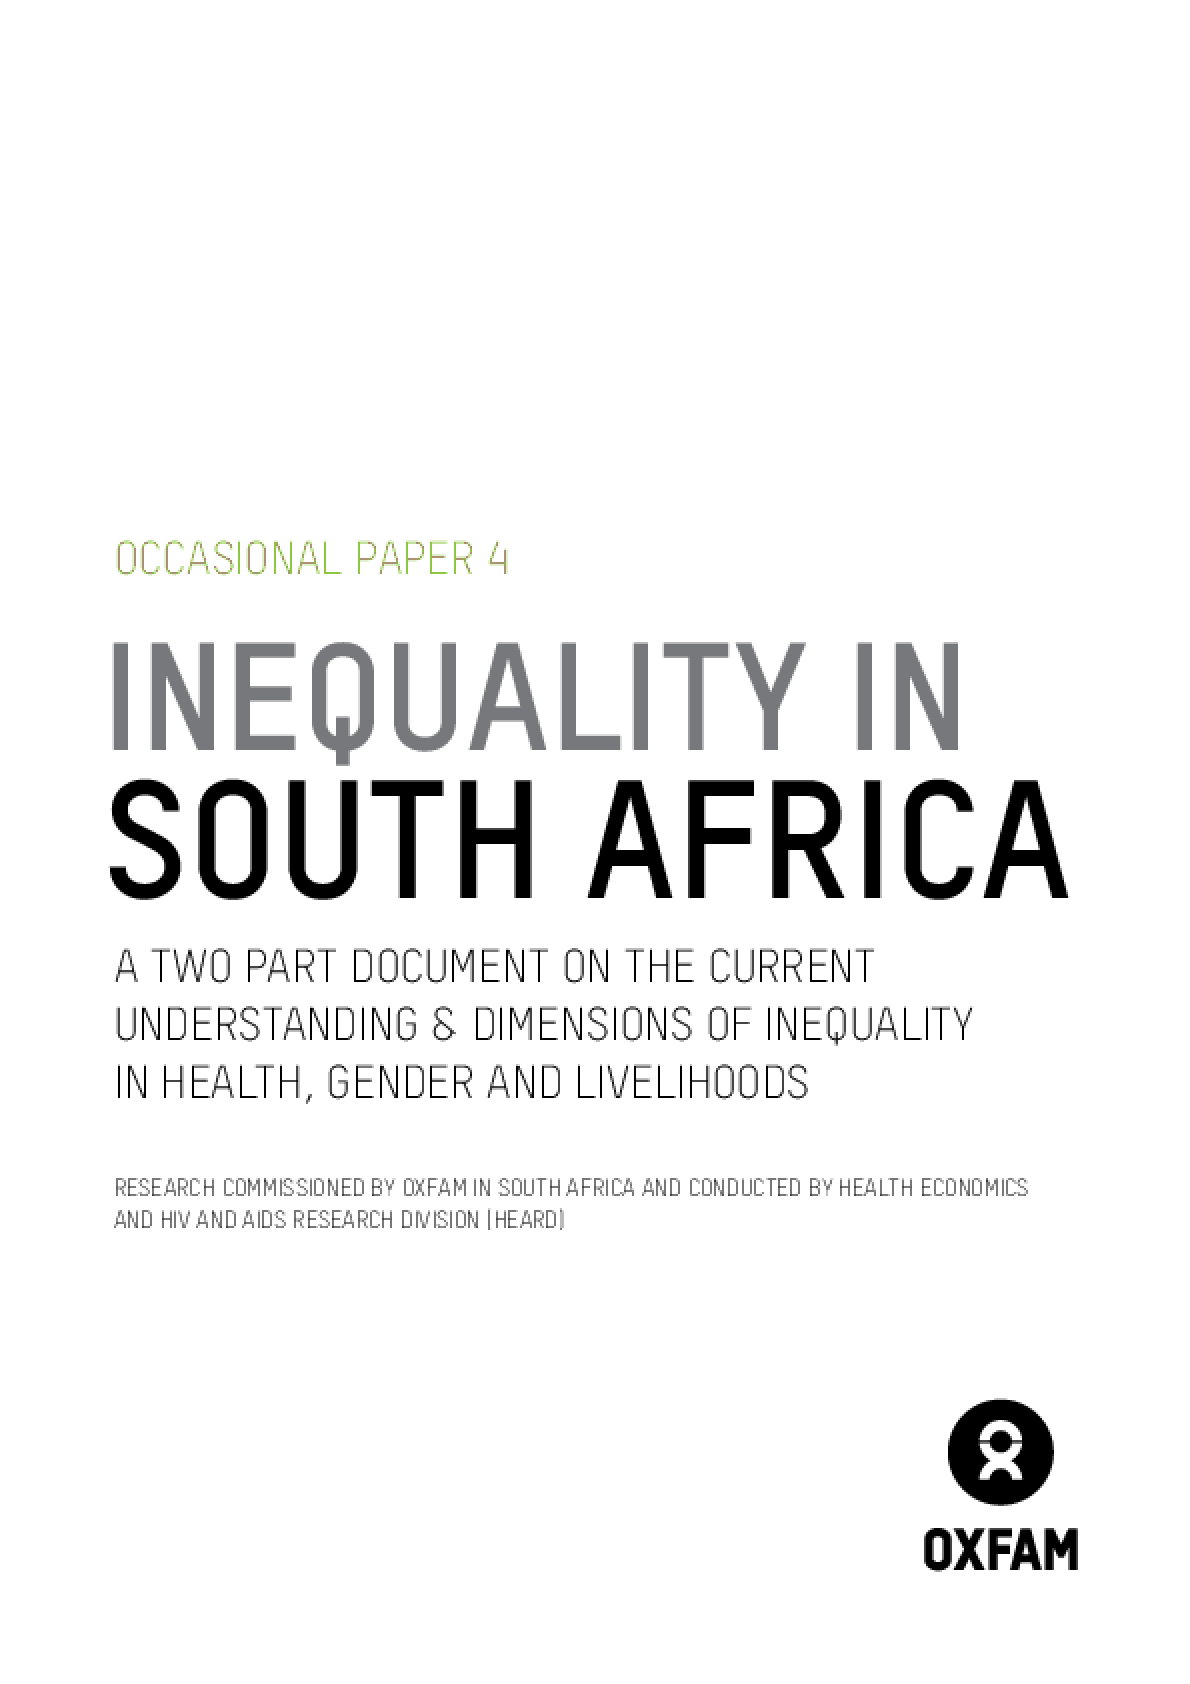 Inequality in South Africa: A two part document on the current understanding and dimensions of inequality in health, gender and livelihoods